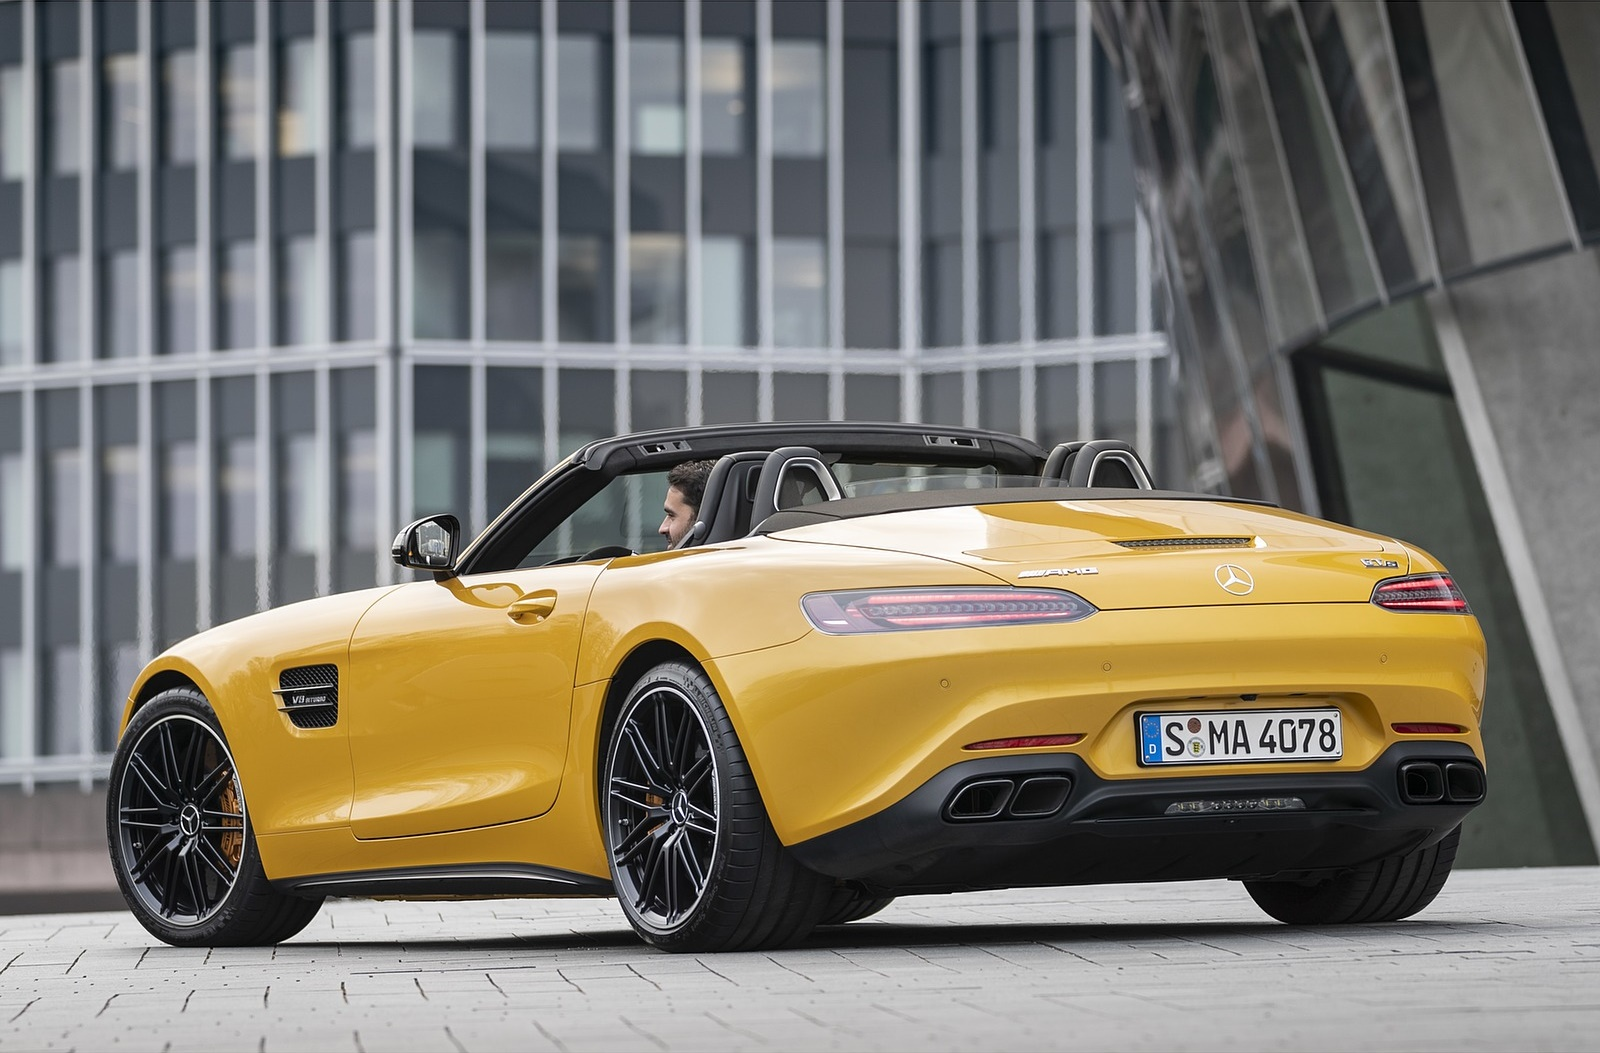 Mercedes Benz Amg Gts Hd Wallpaper How To